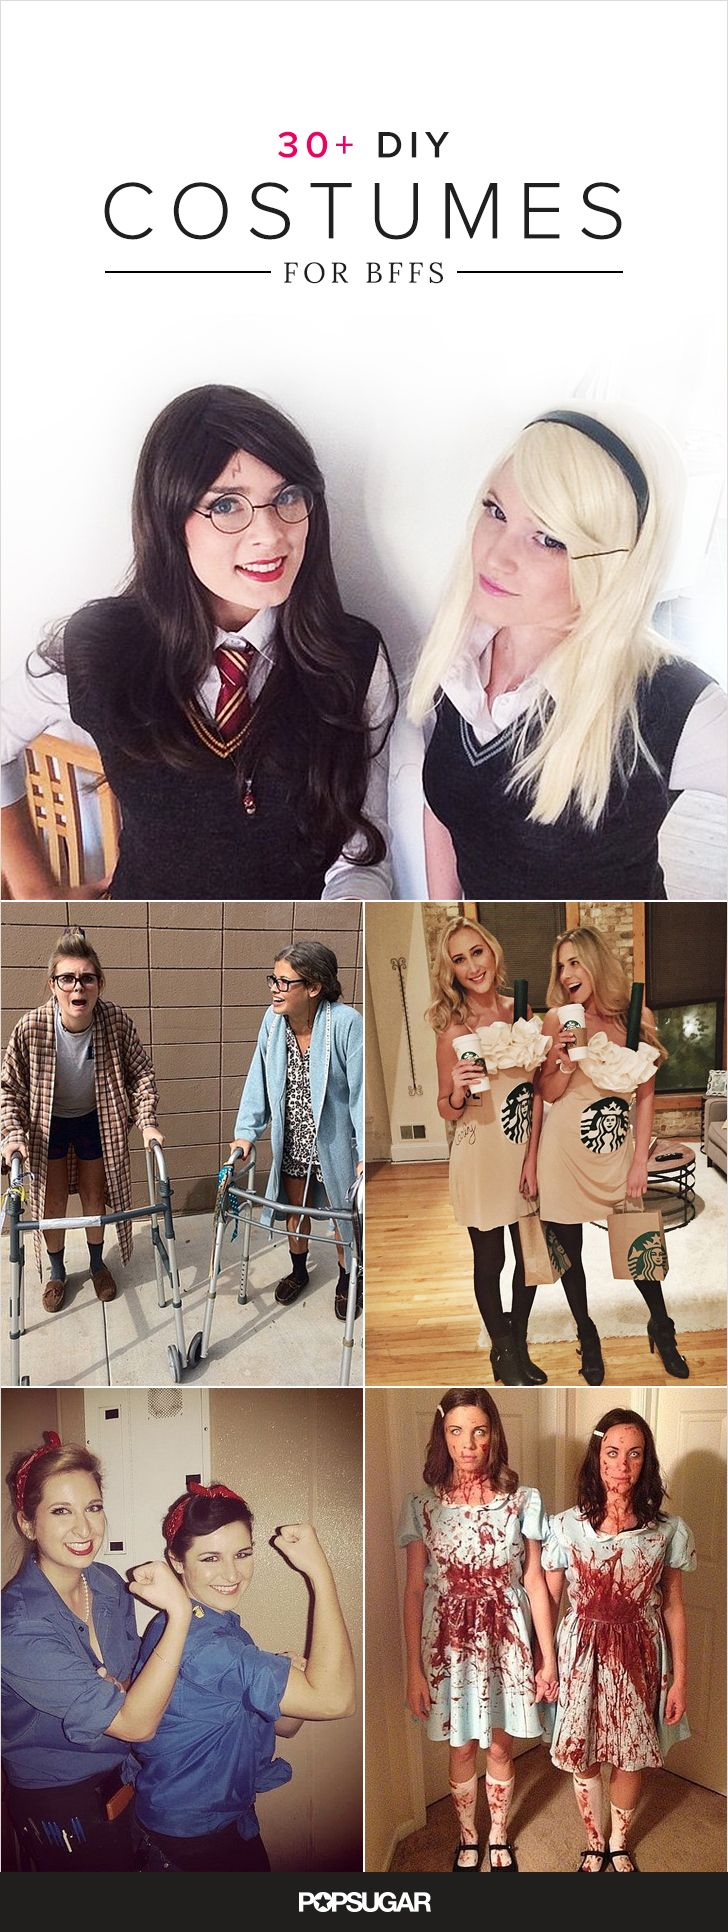 While dressing up with your best friend is always a good idea, making your own costumes allows for you to flaunt your glorious friendship. Also your inventive creativity and enviable craft skills will shine through.